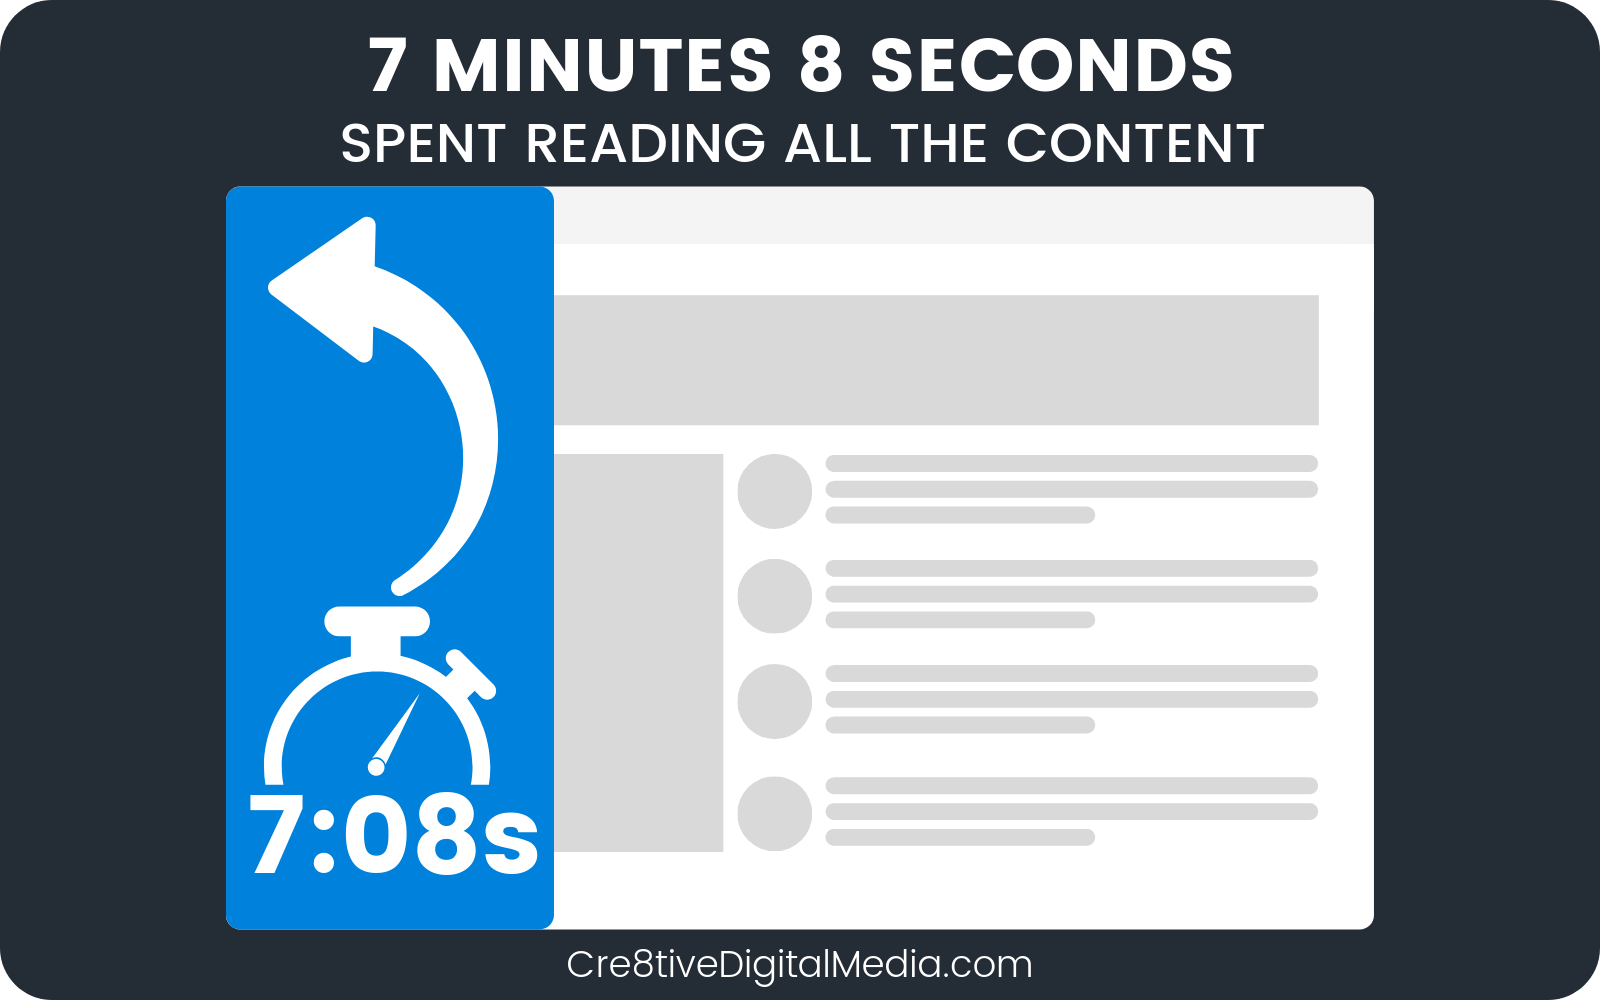 7 Minutes 8 Seconds spent reading all the content